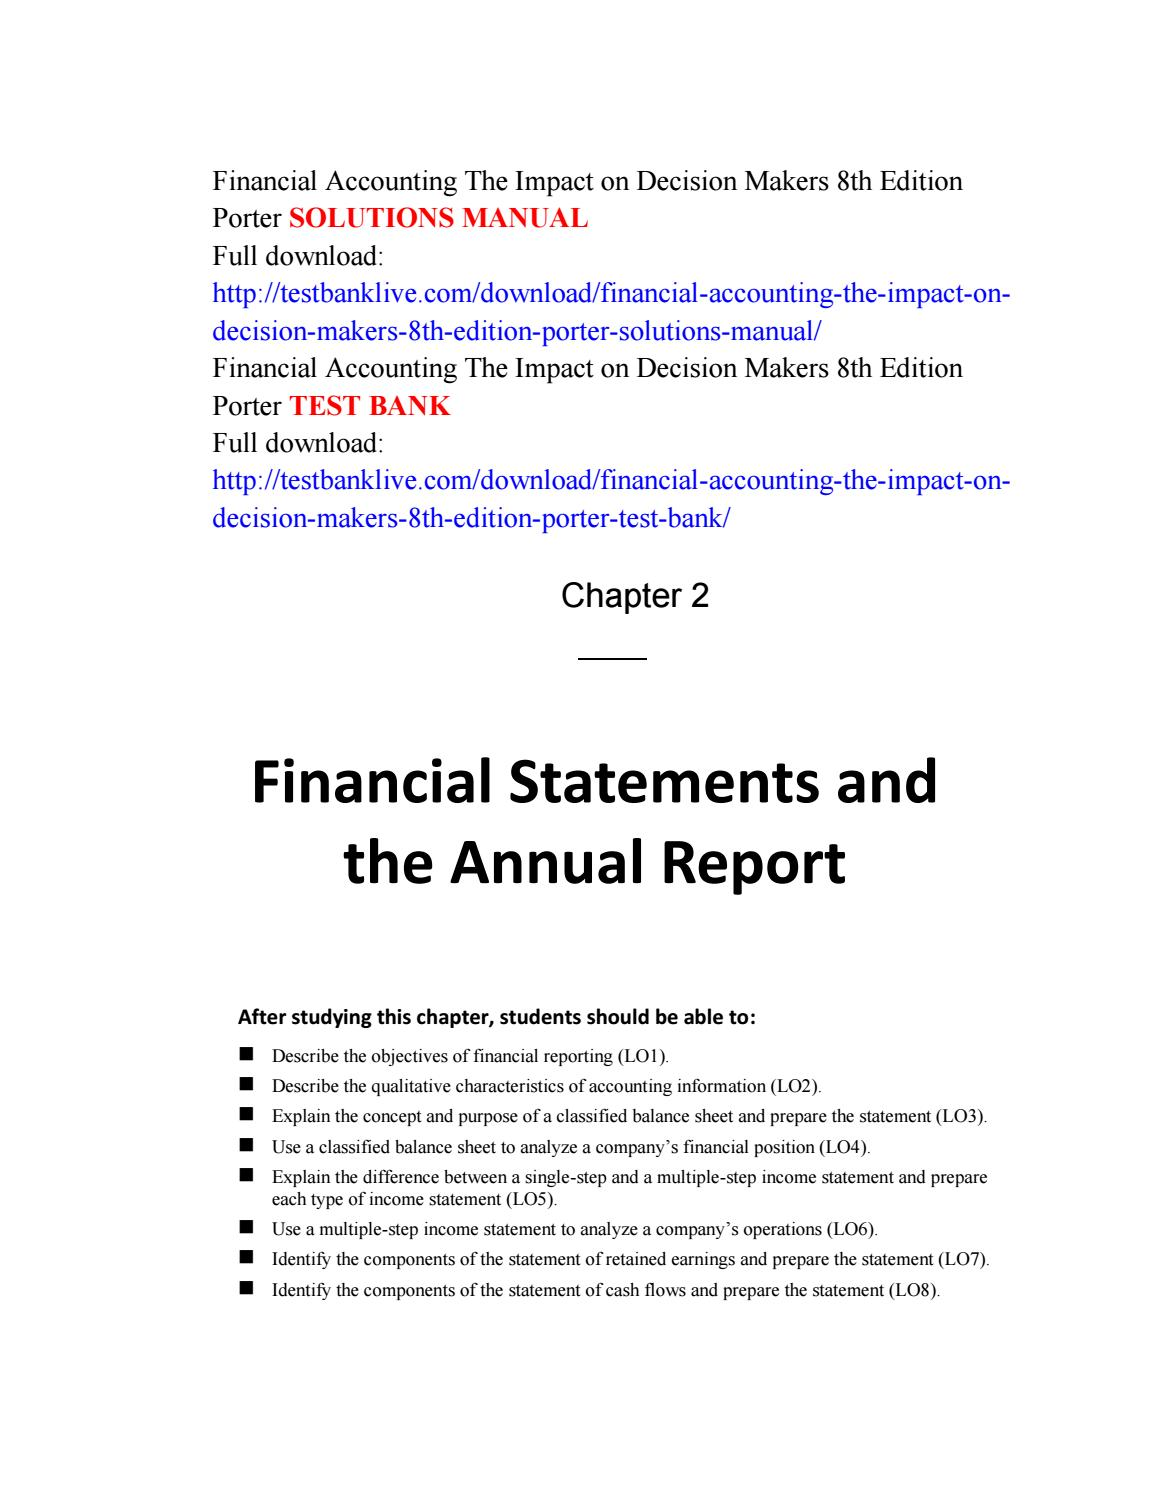 Financial accounting the impact on decision makers 8th edition porter solutions  manual by Wild444 - issuu